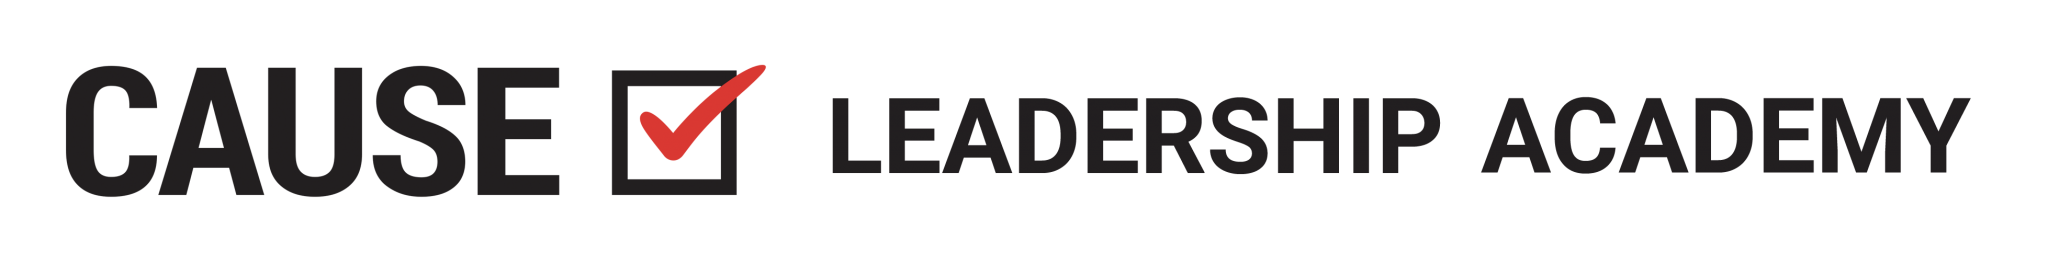 Leadership Academy logo 2017